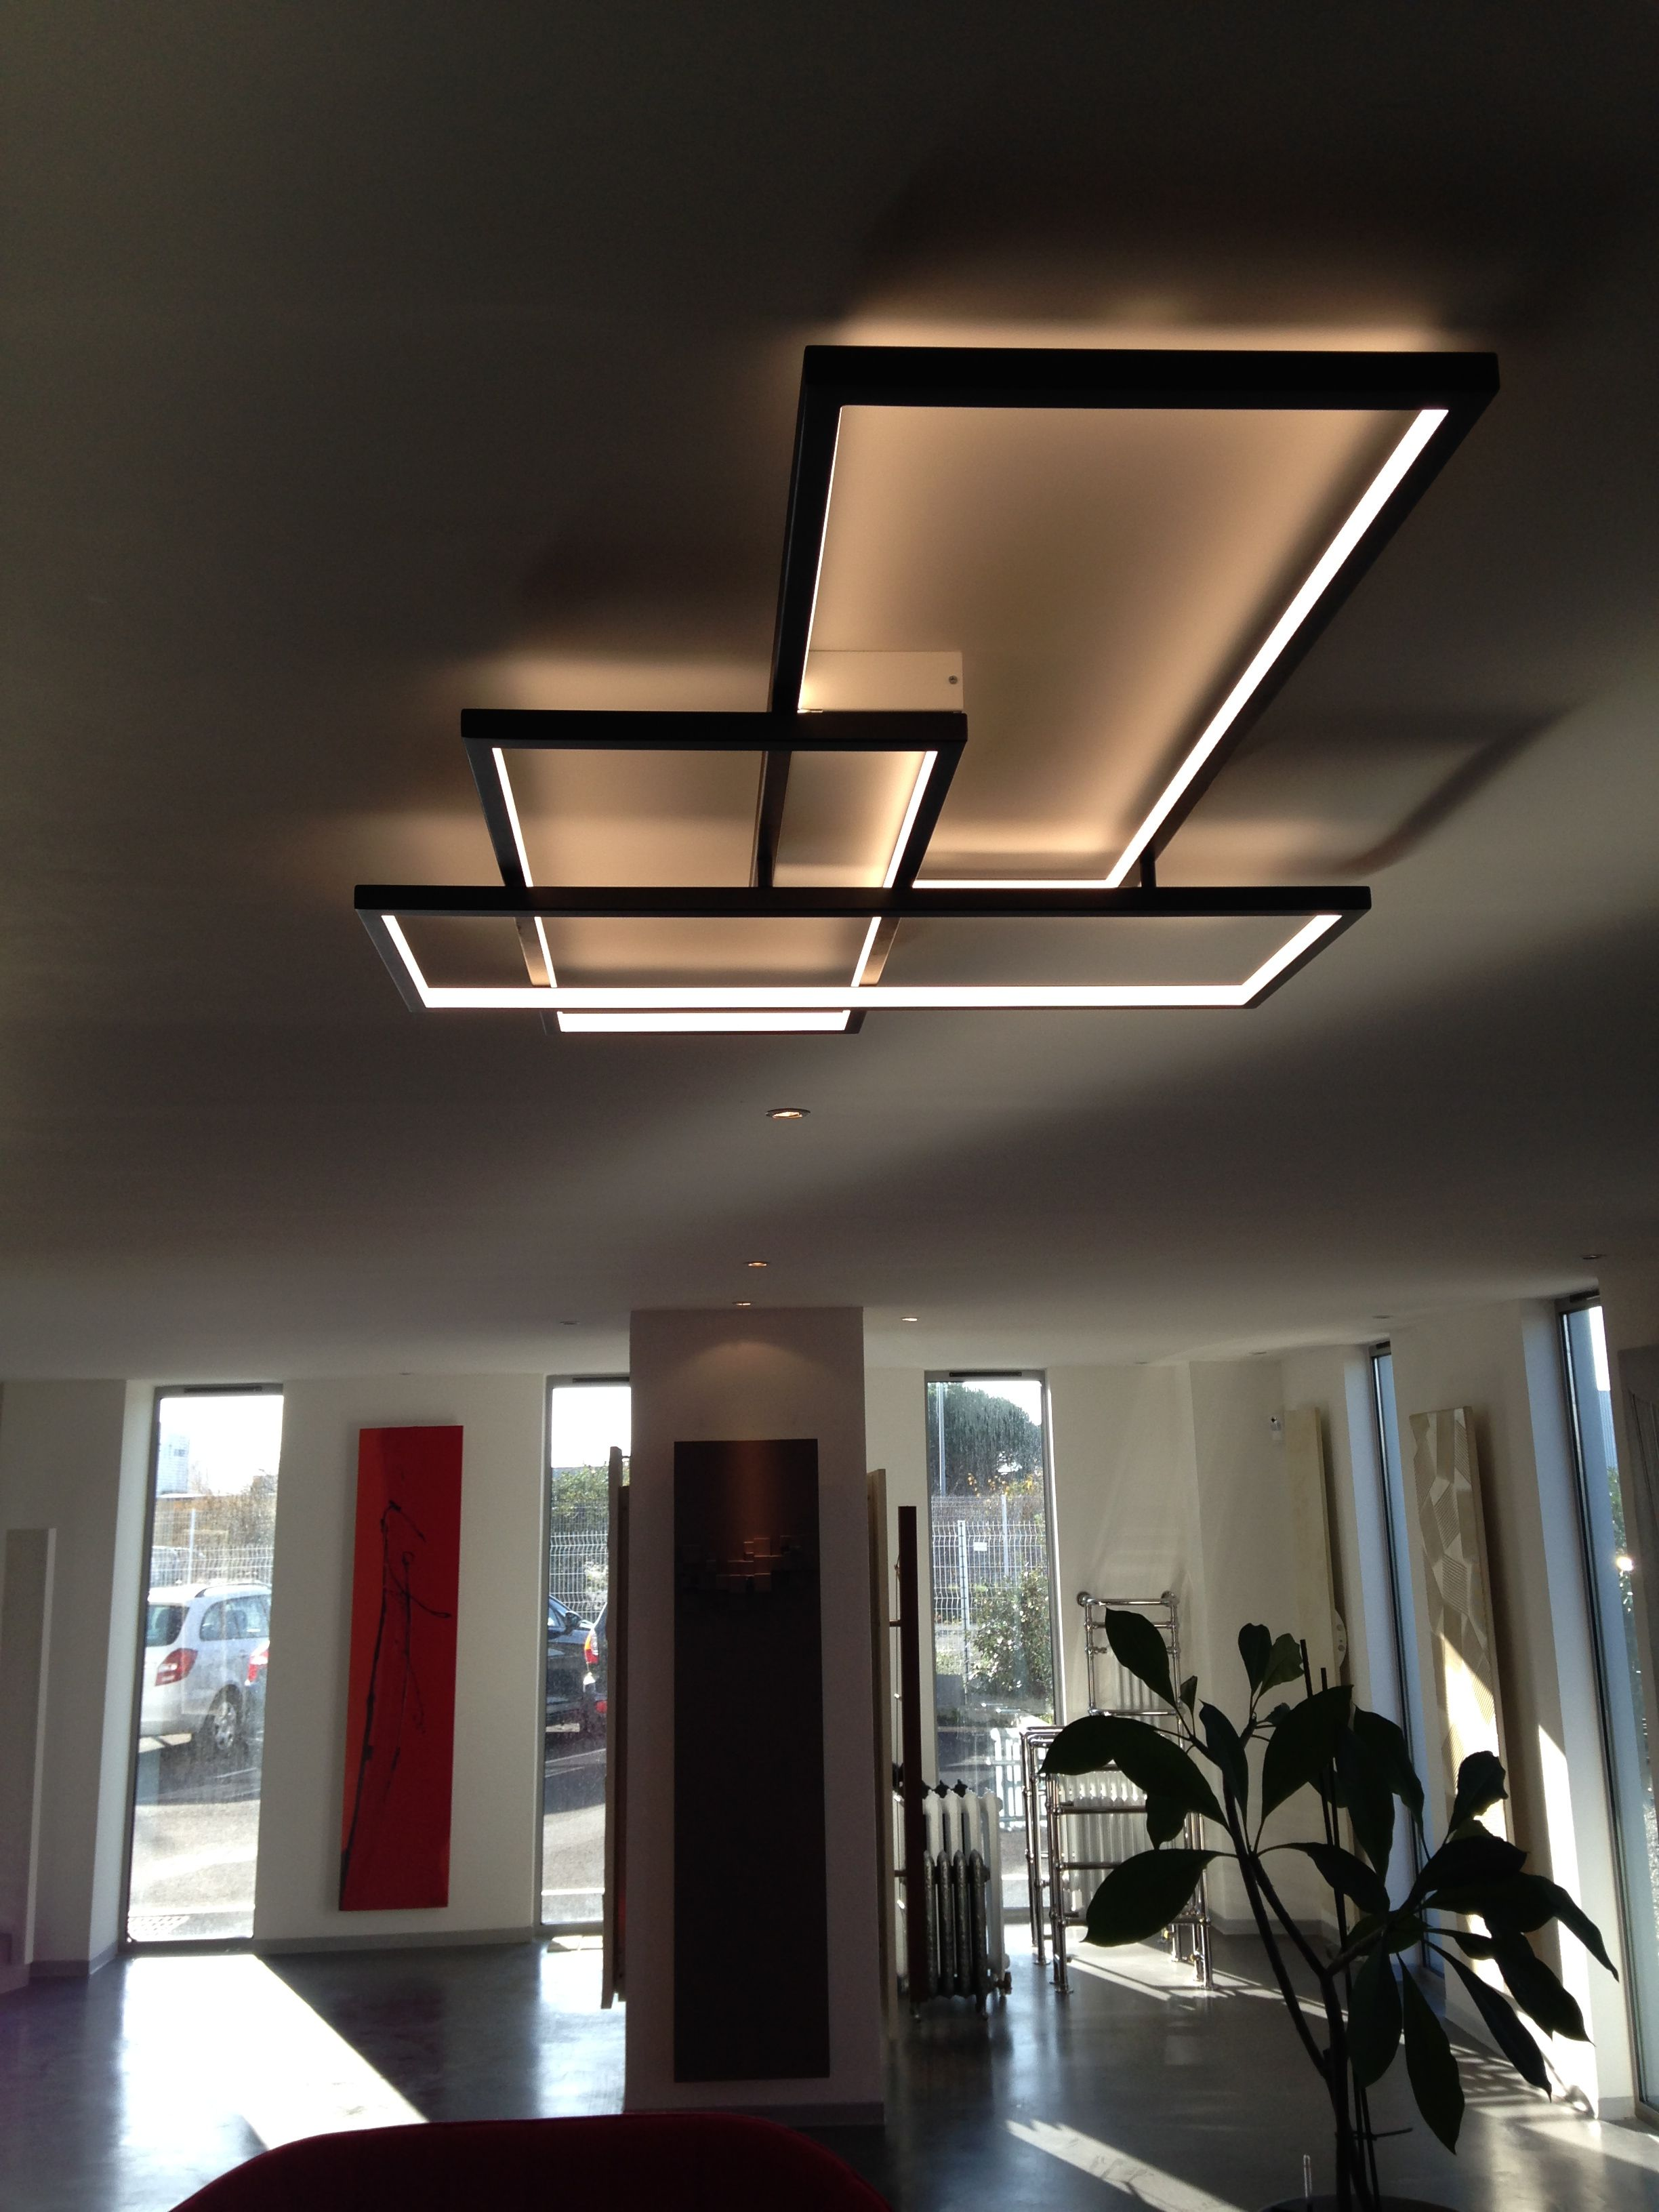 The Trio Lt A Product That Combines A High Quality Led To A